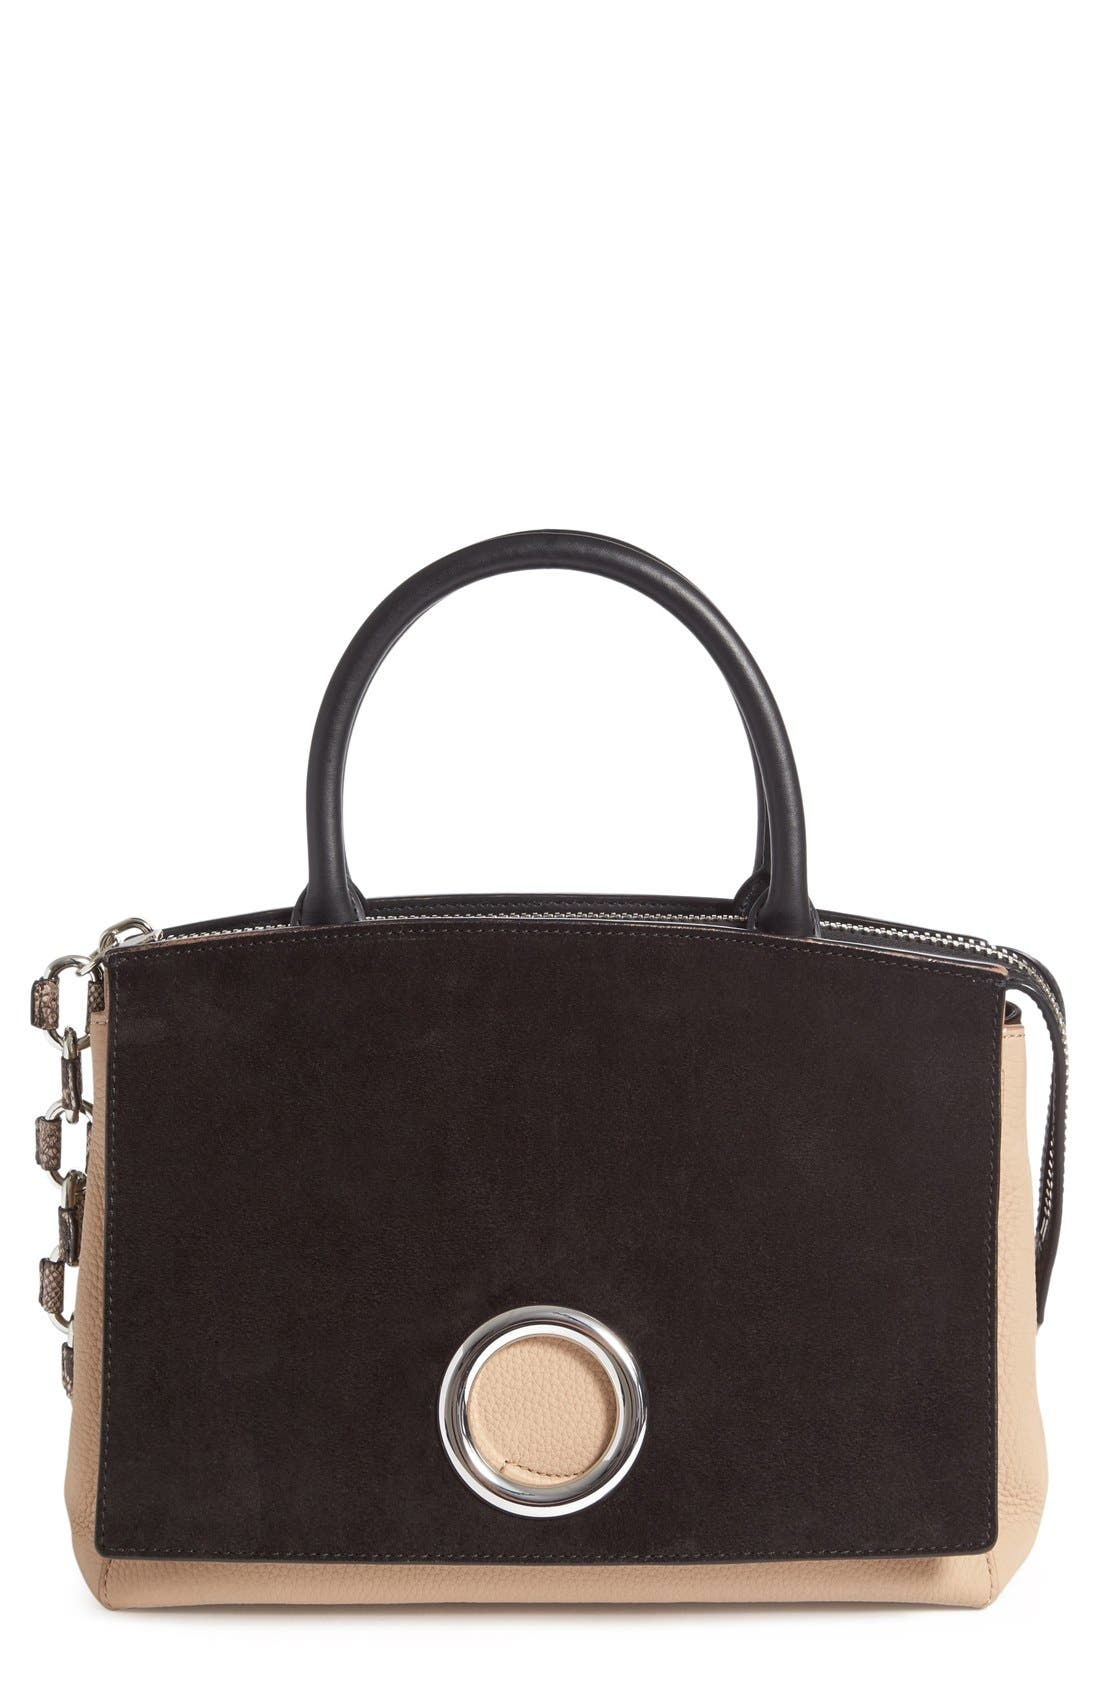 ALEXANDER WANG Attica Leather Shoulder Bag